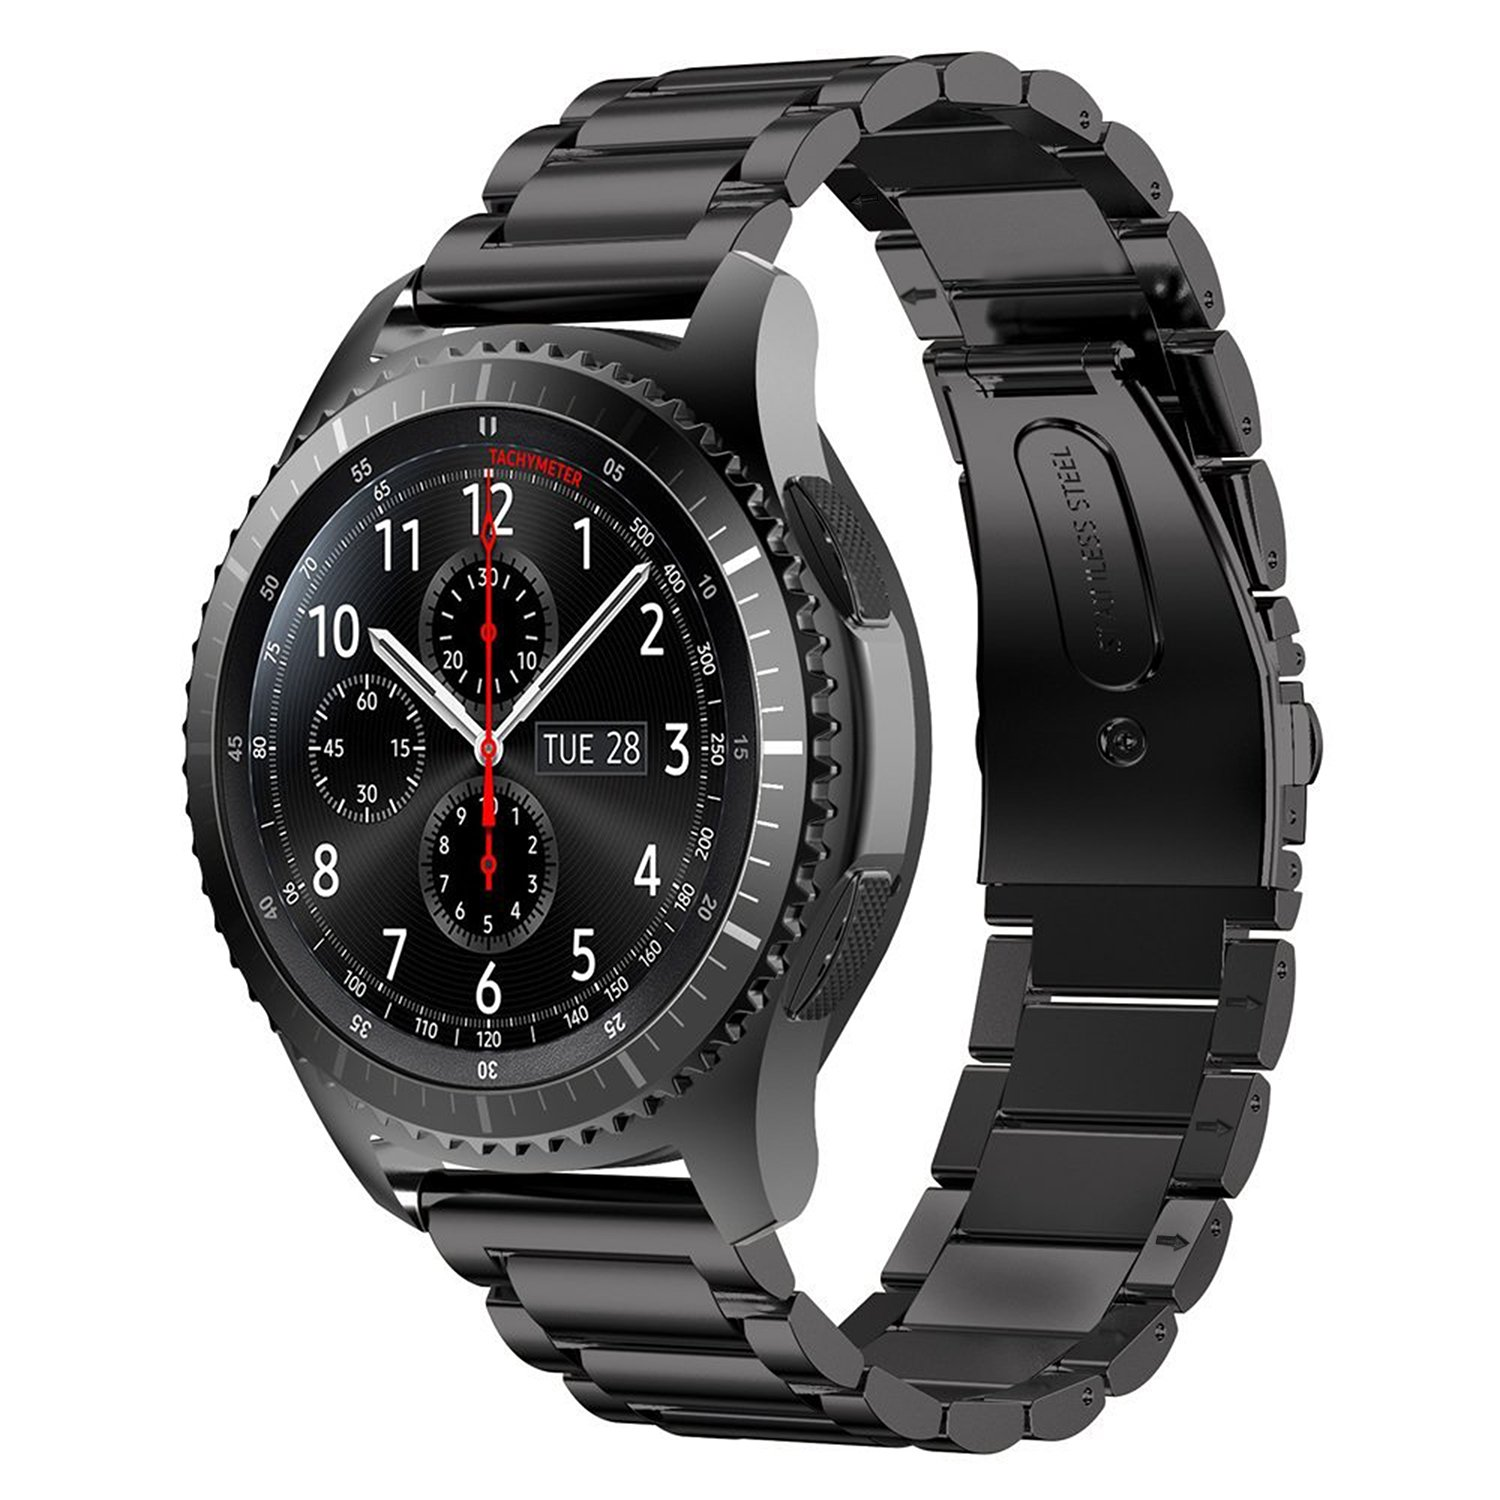 Gear S3 Frontier Band XL/Large, Oitom Premium Solid Stainless Steel Watch Bands Link Bracelet Strap for Samsung Gear S3 Classic Gear S3 Frontier Galaxy Watch 46mm Smart Watch Fitness Black by Oitom